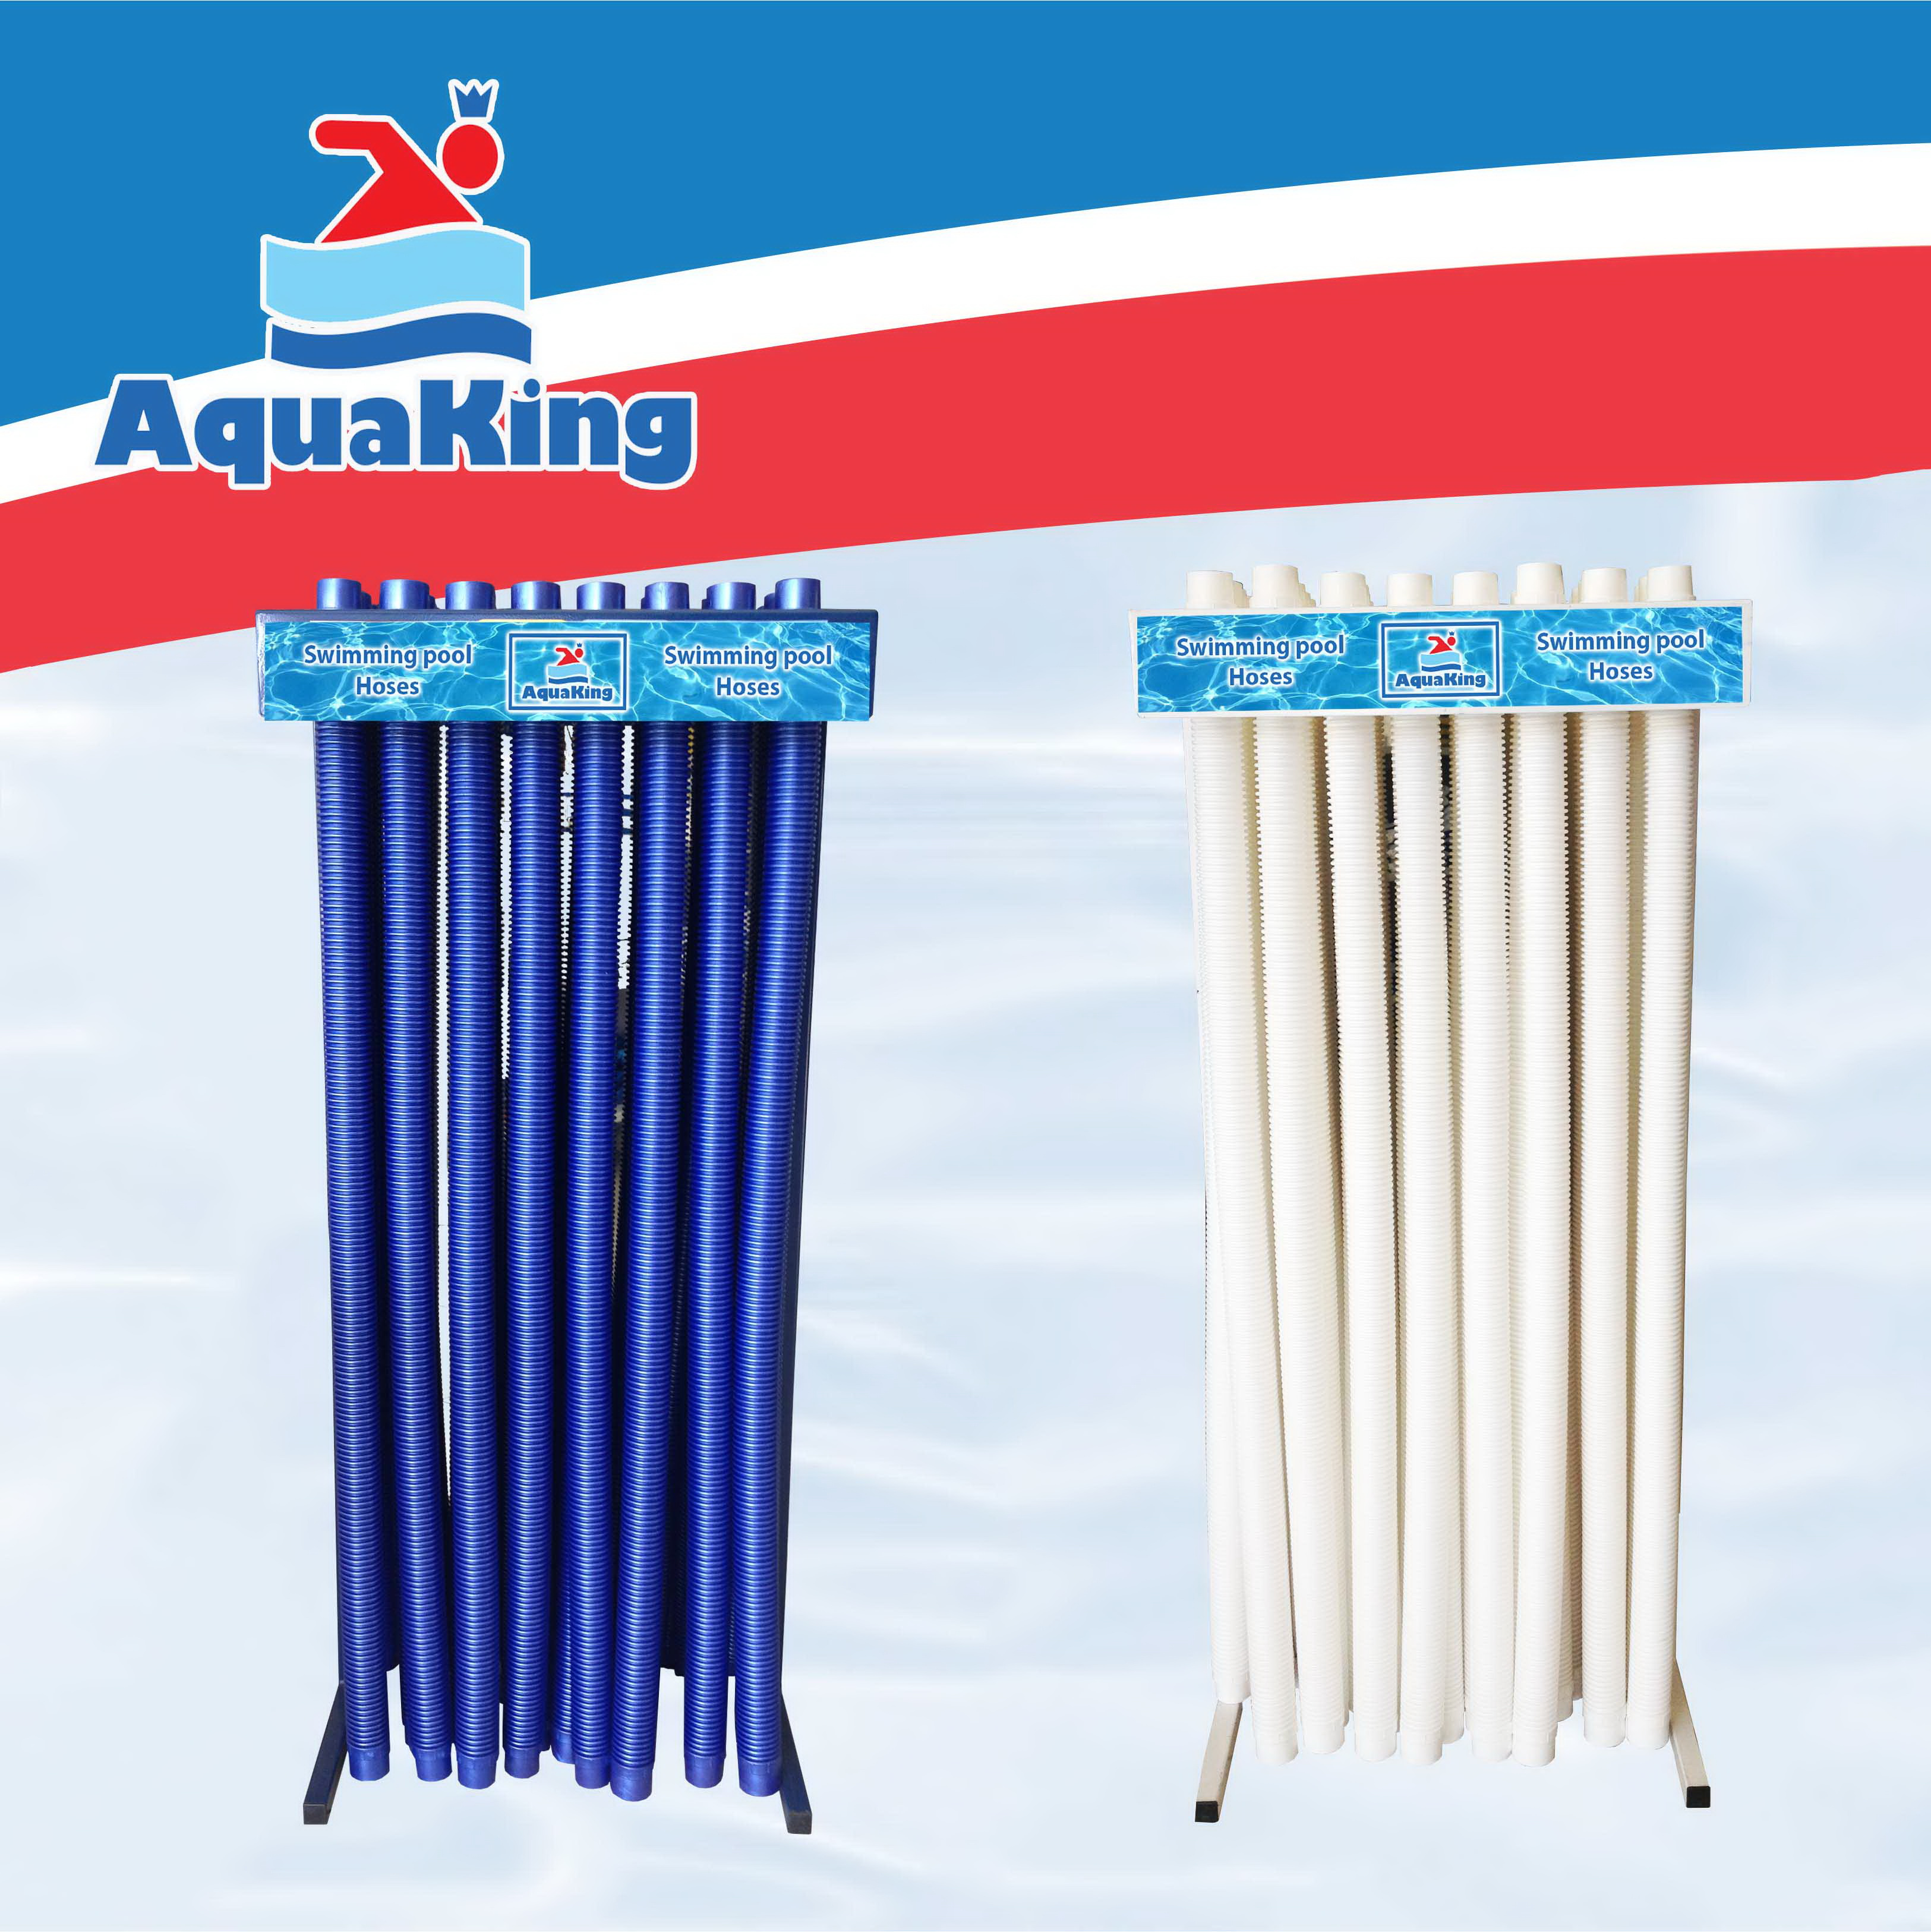 Hose - Aquaking (Blue)